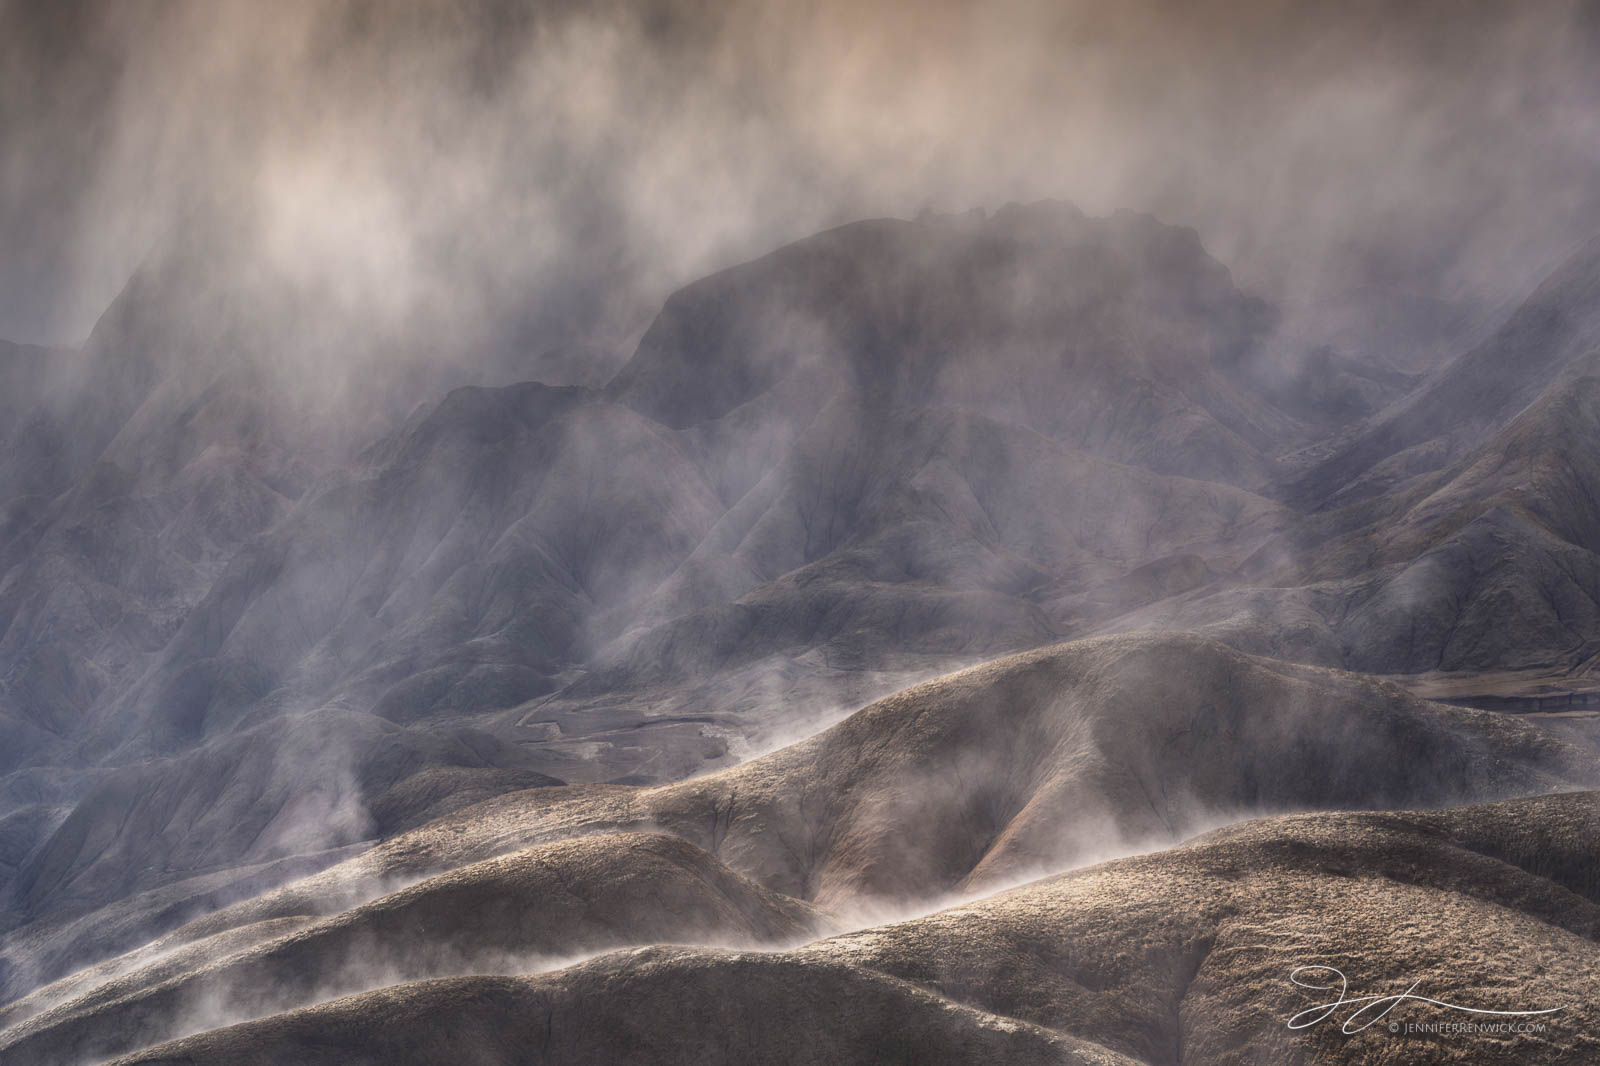 Steam rises off the badlands as the sun breaks through the clouds. The previous night, it had rained, and in the morning I was...